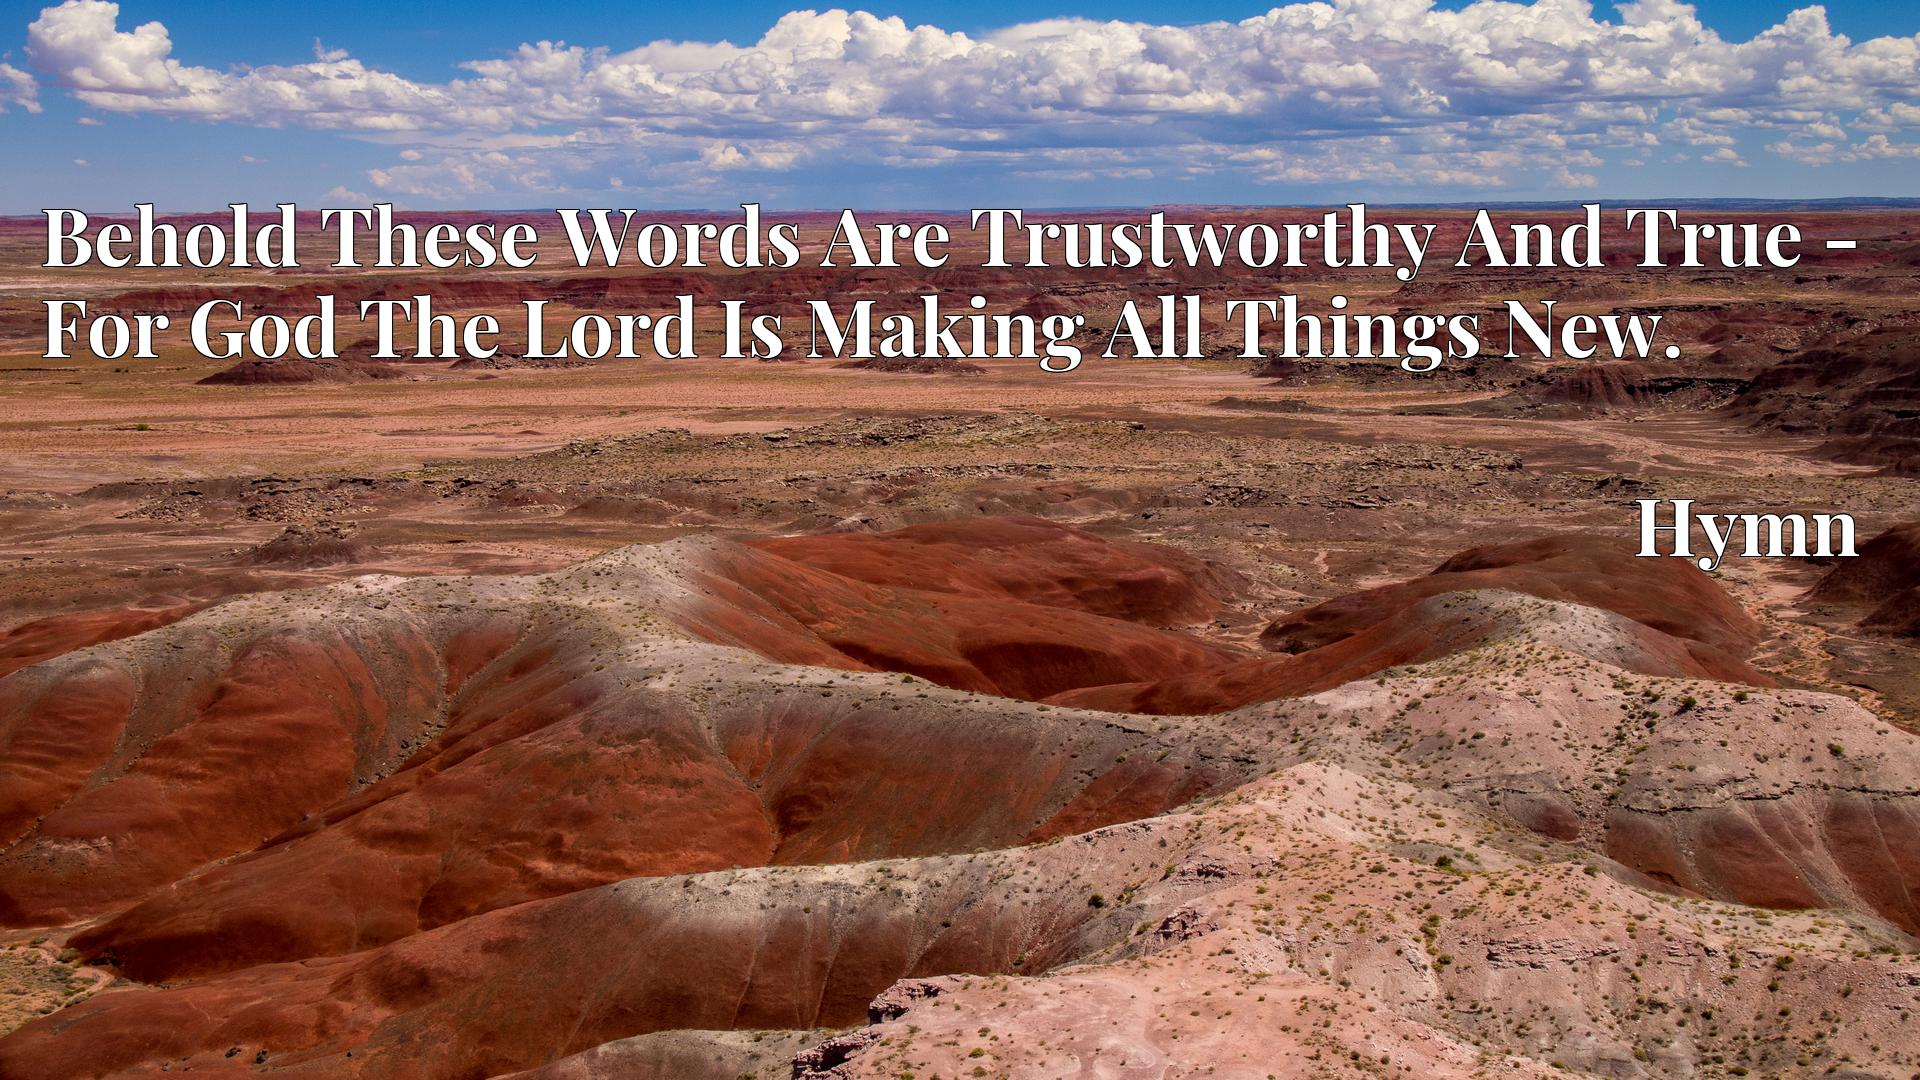 Behold These Words Are Trustworthy And True - For God The Lord Is Making All Things New. Hymn